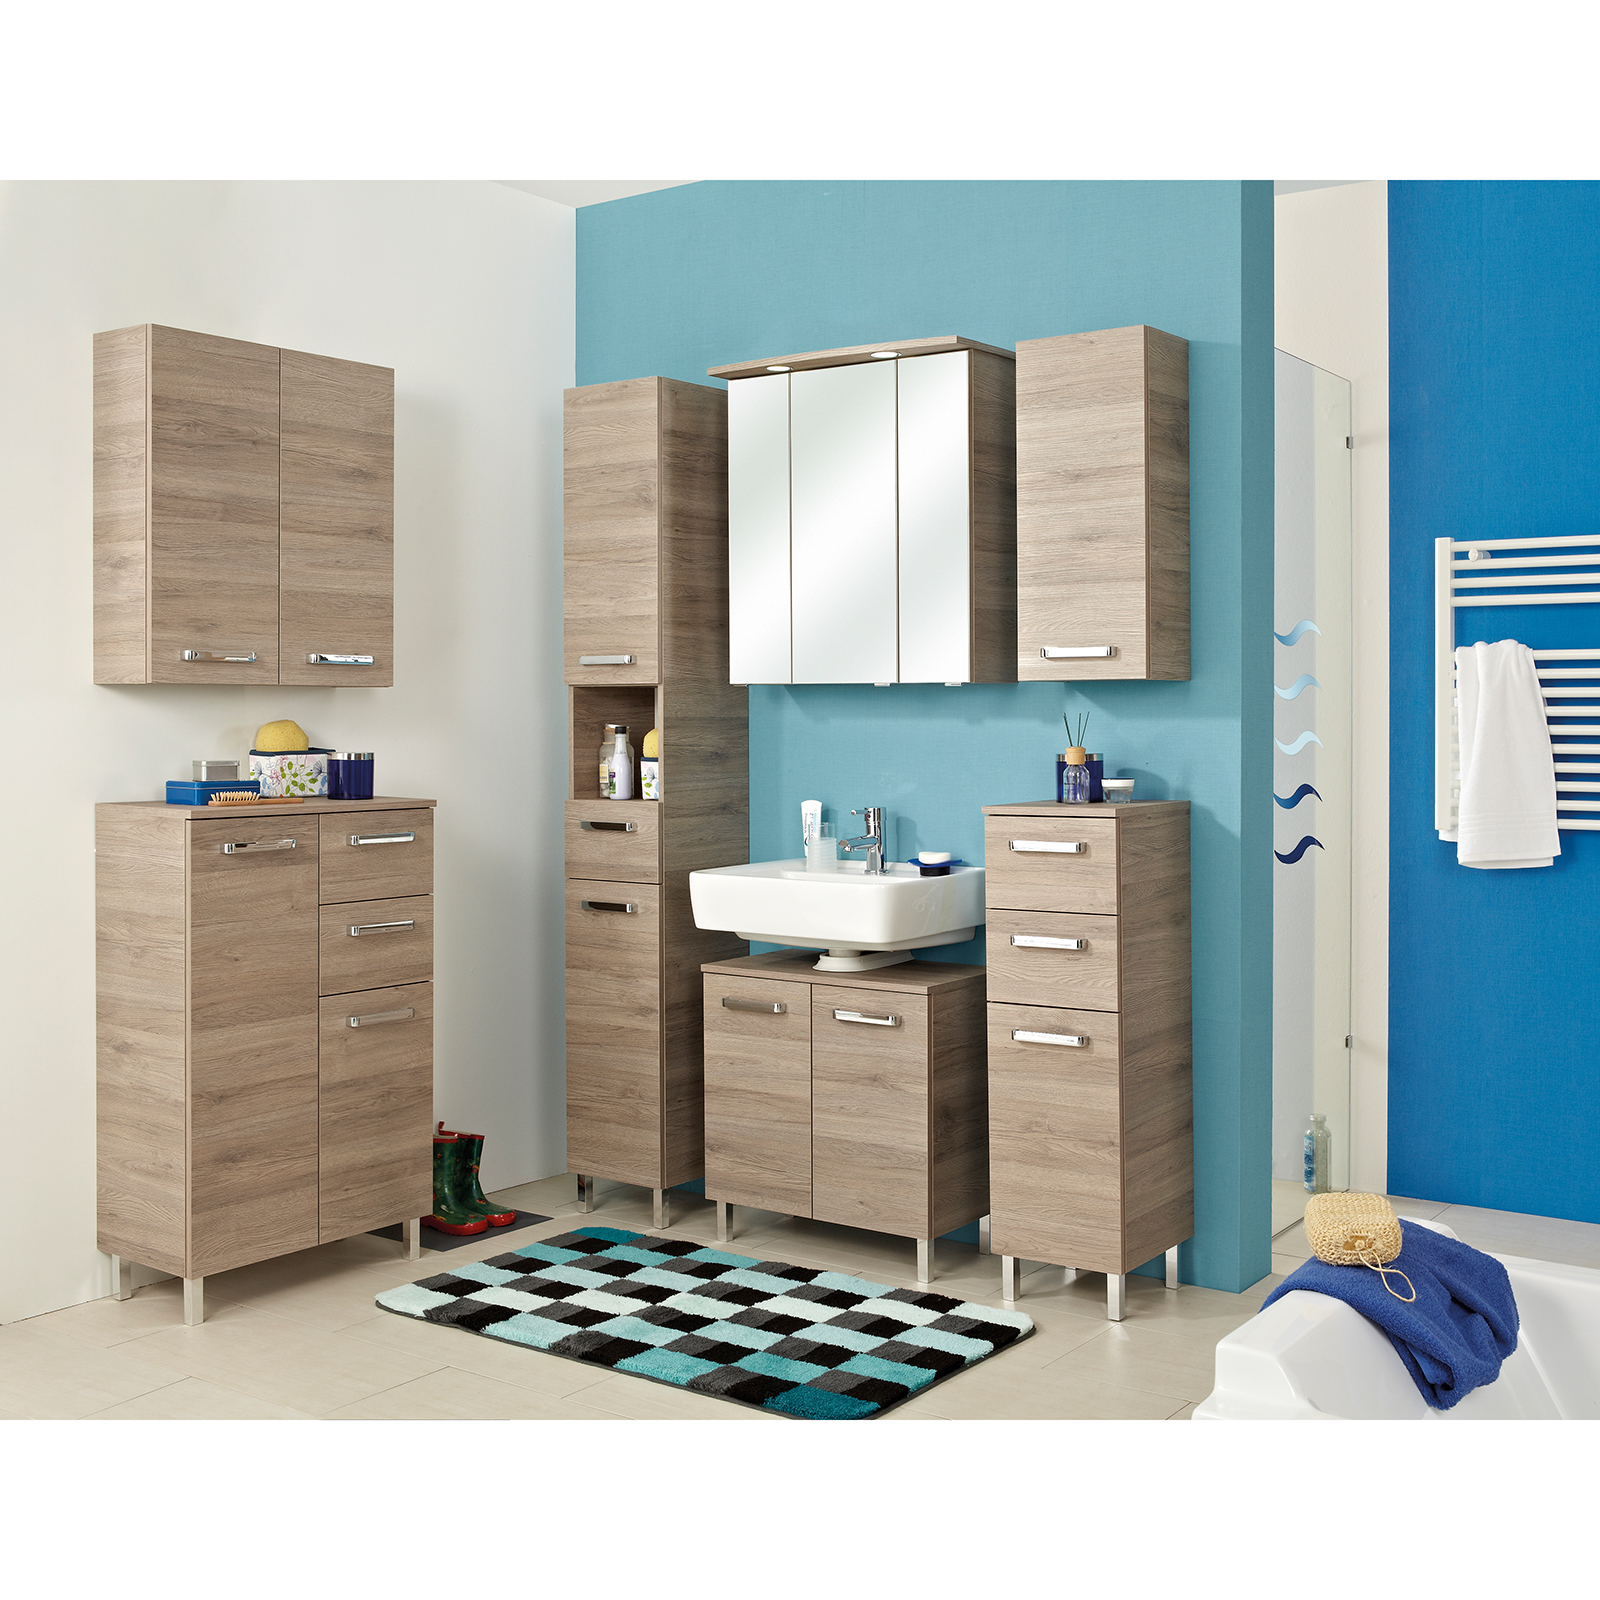 Highboard - San Remo Eiche - 30 cm breit